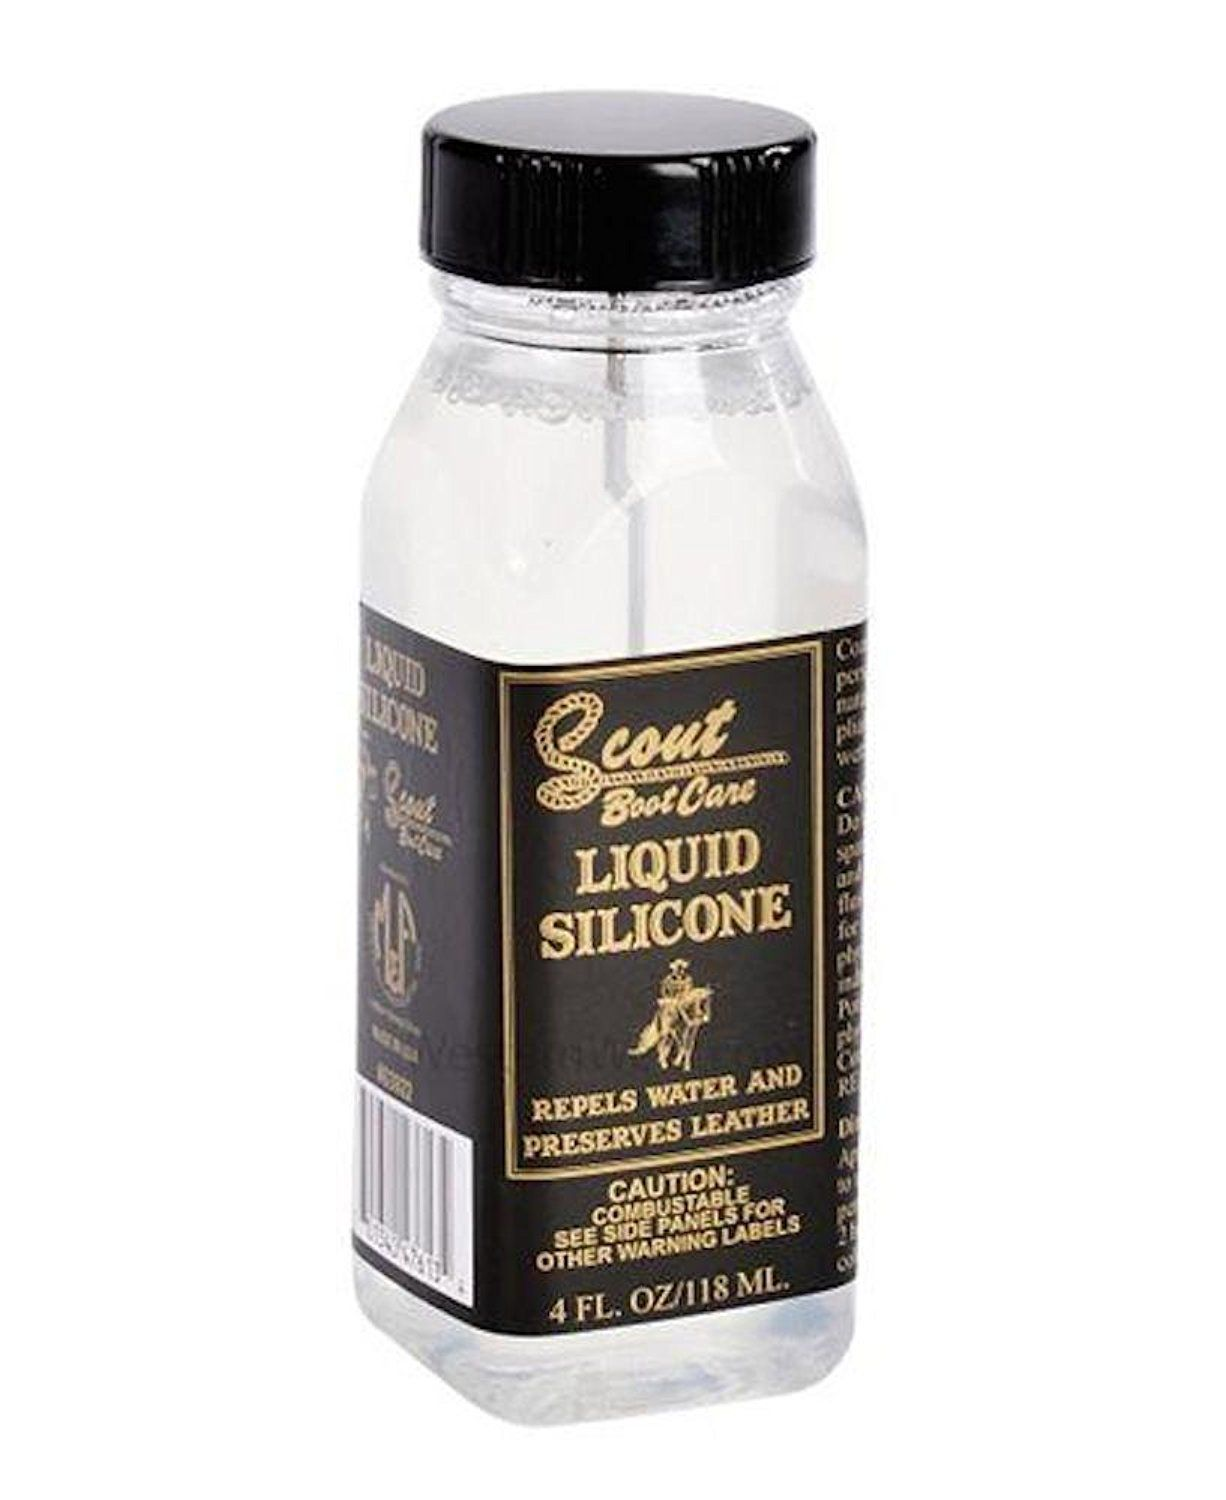 Scout Boot Care Clear Liquid Silicone Boot Cleaner Boot